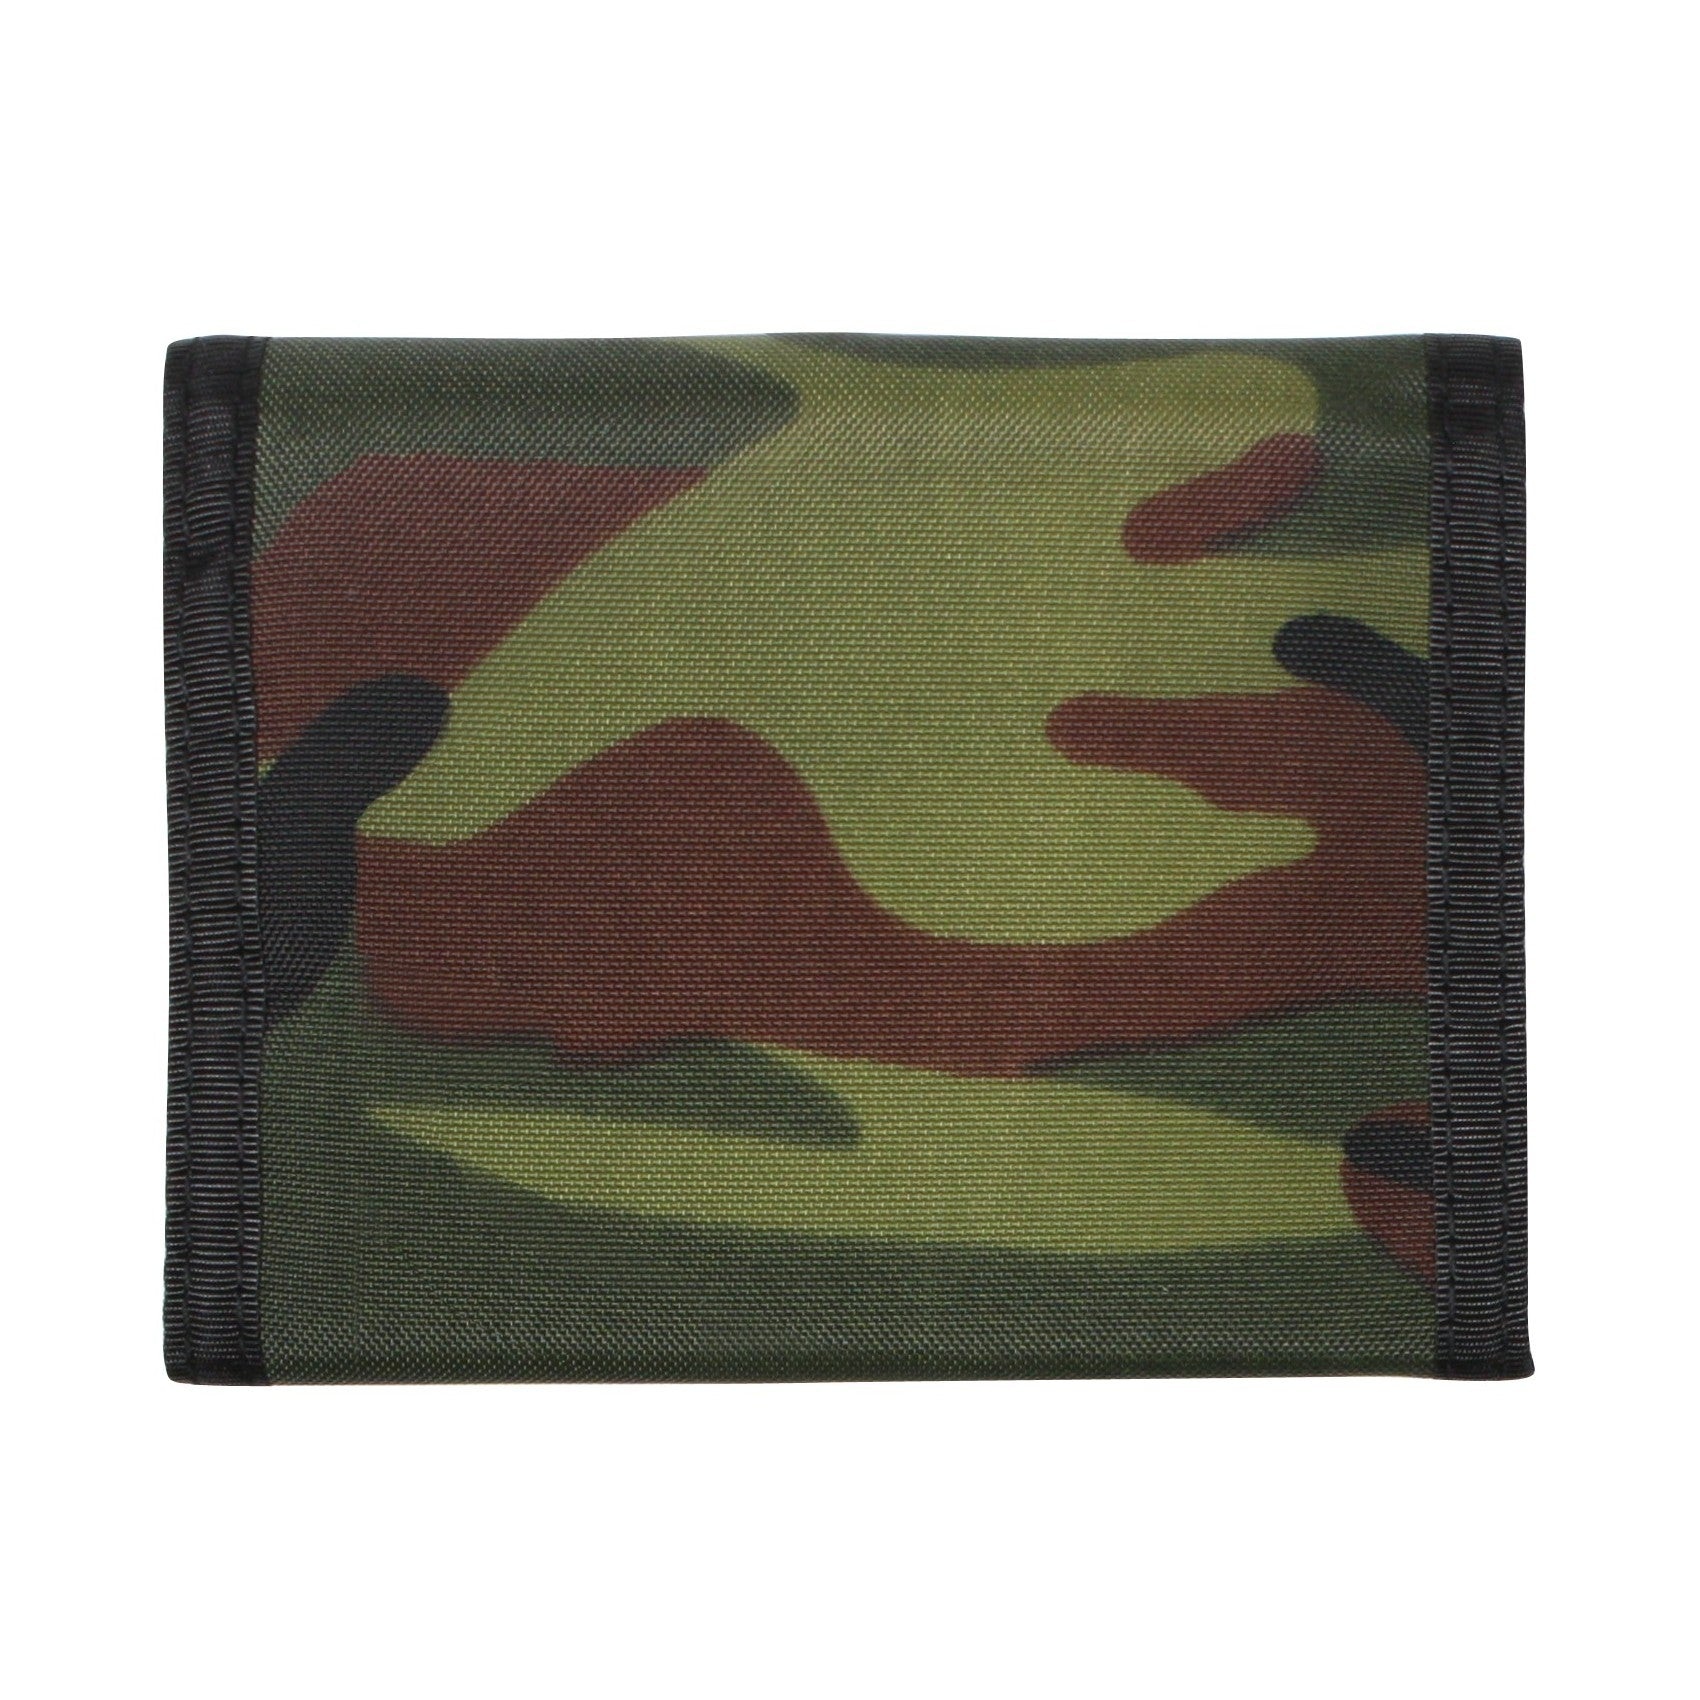 Nylon Commando Wallet Woodland Camouflage